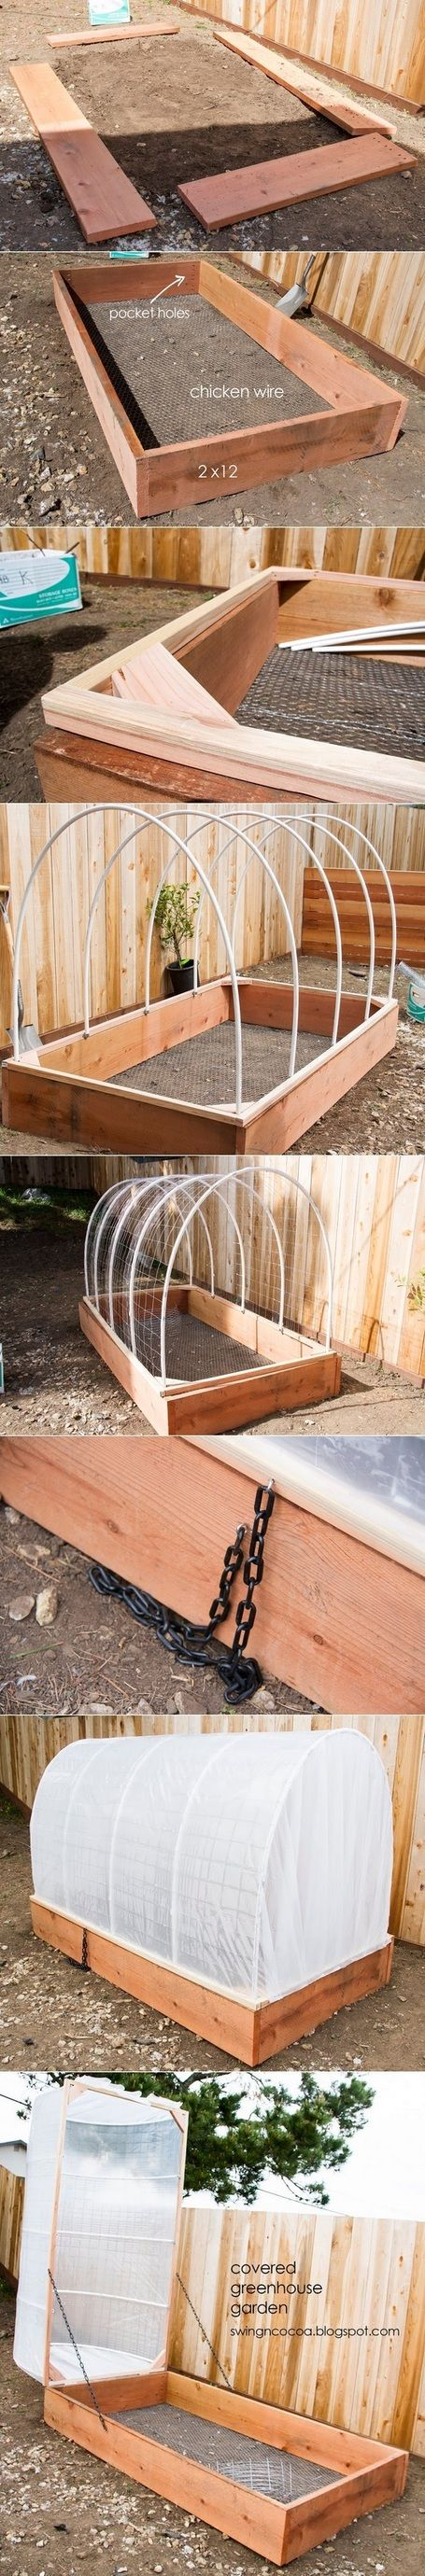 Making a Small Greenhouse out of raised garden bed. Hm...